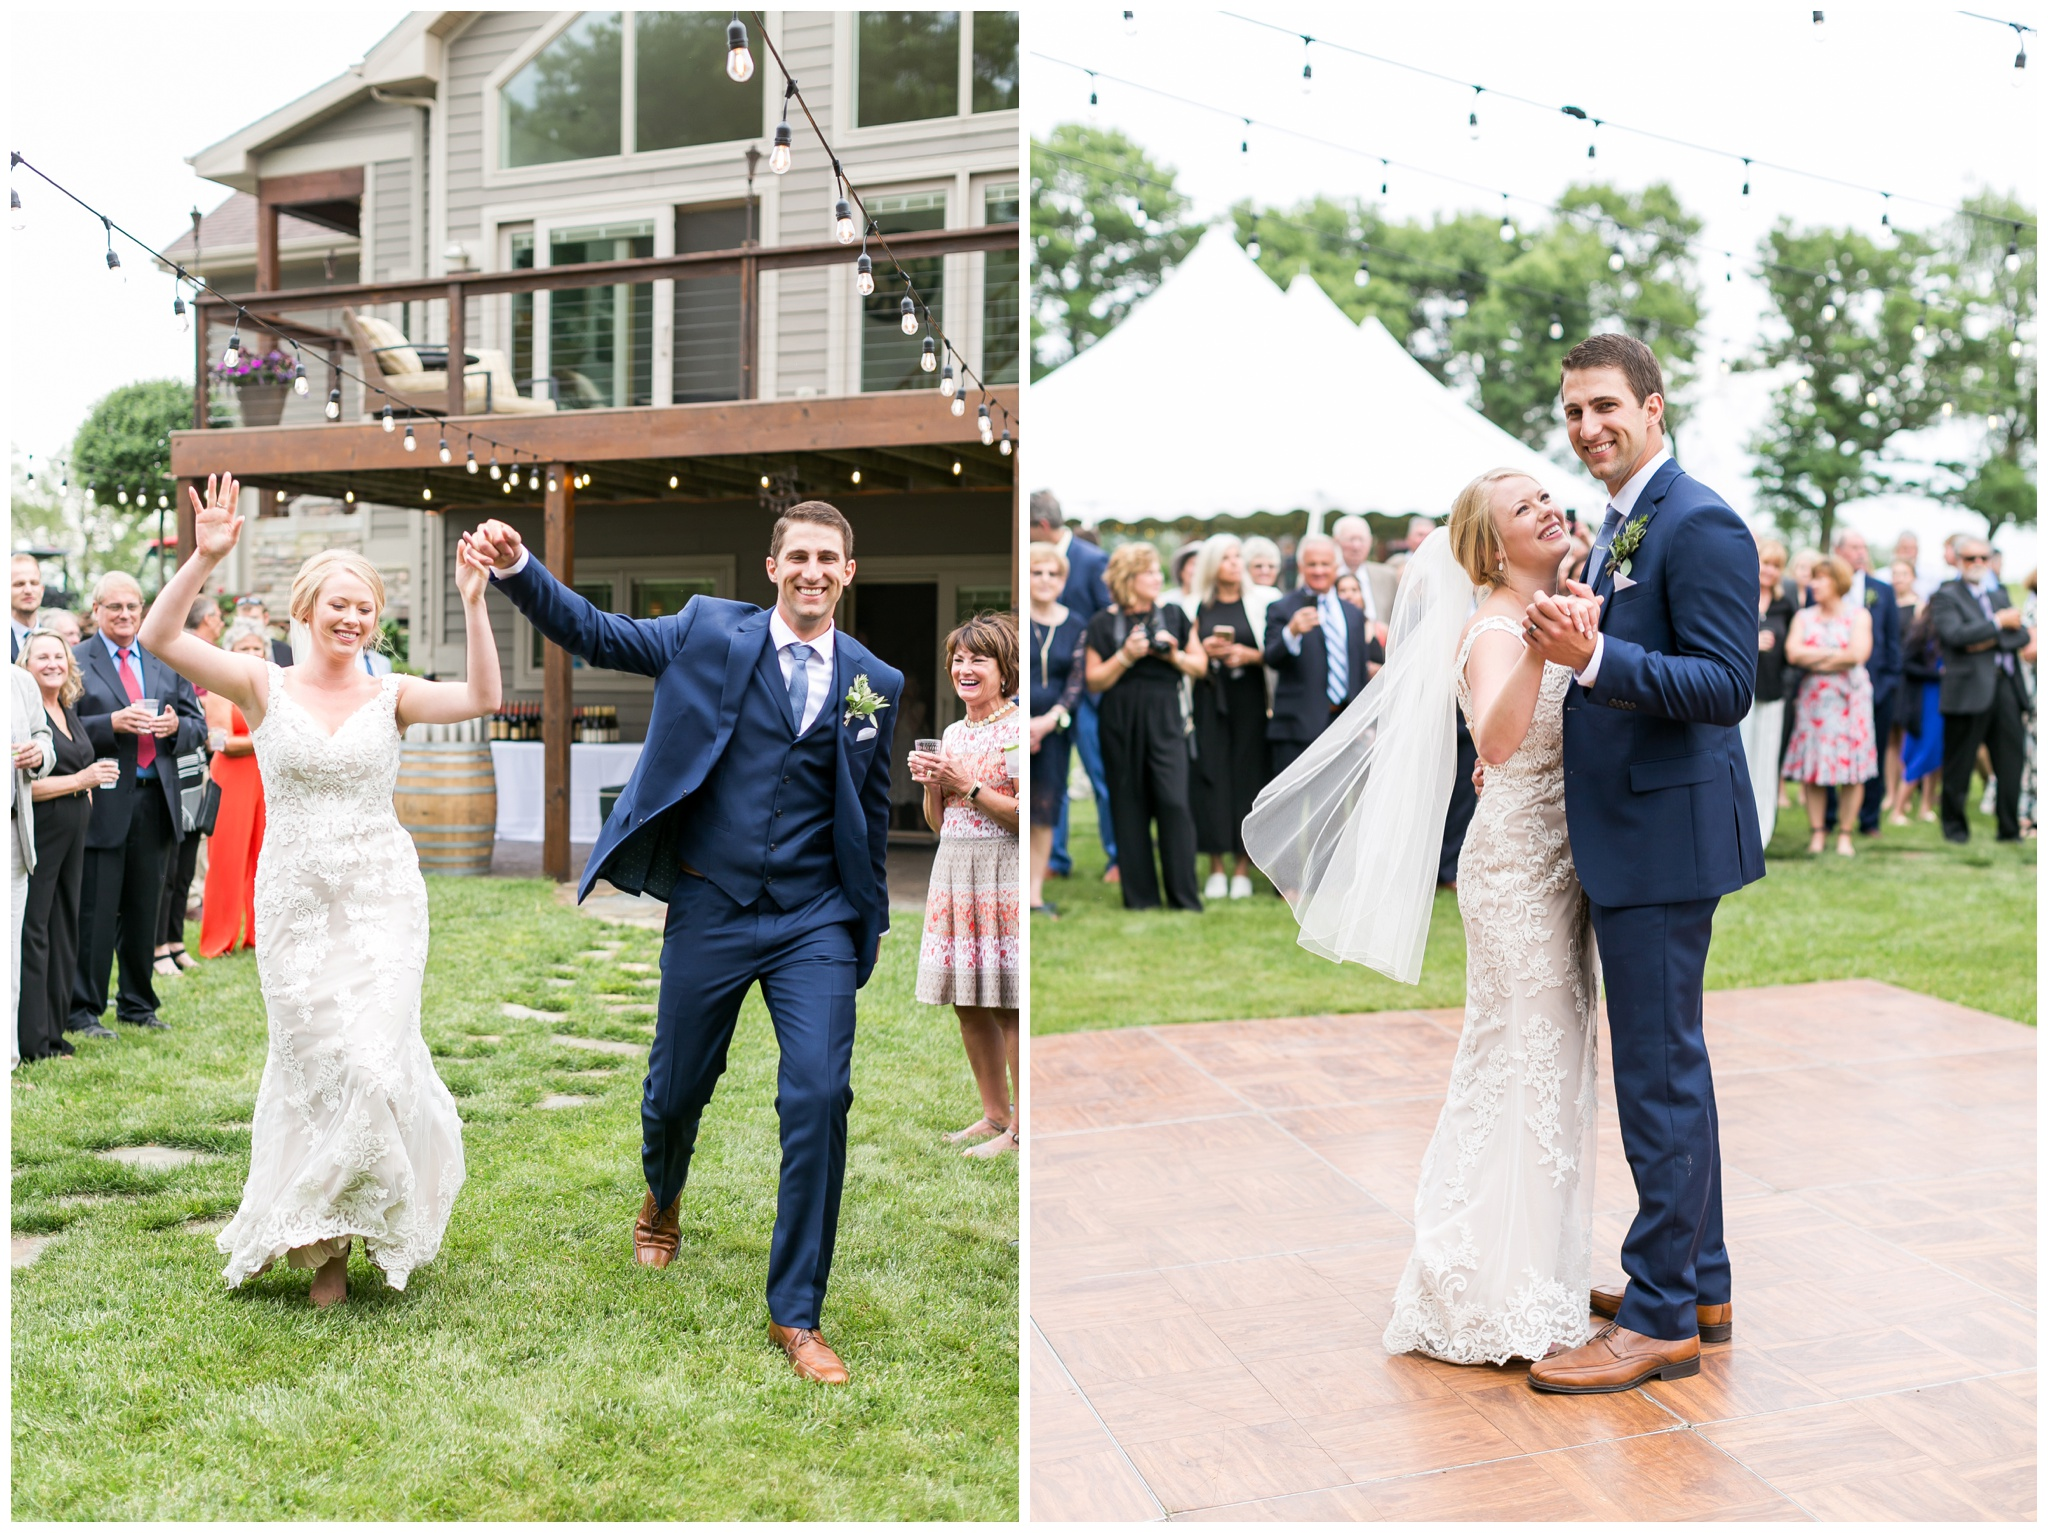 private_estate_wedding_stoughton_wisconsin_wedding_caynay_photo_3869.jpg